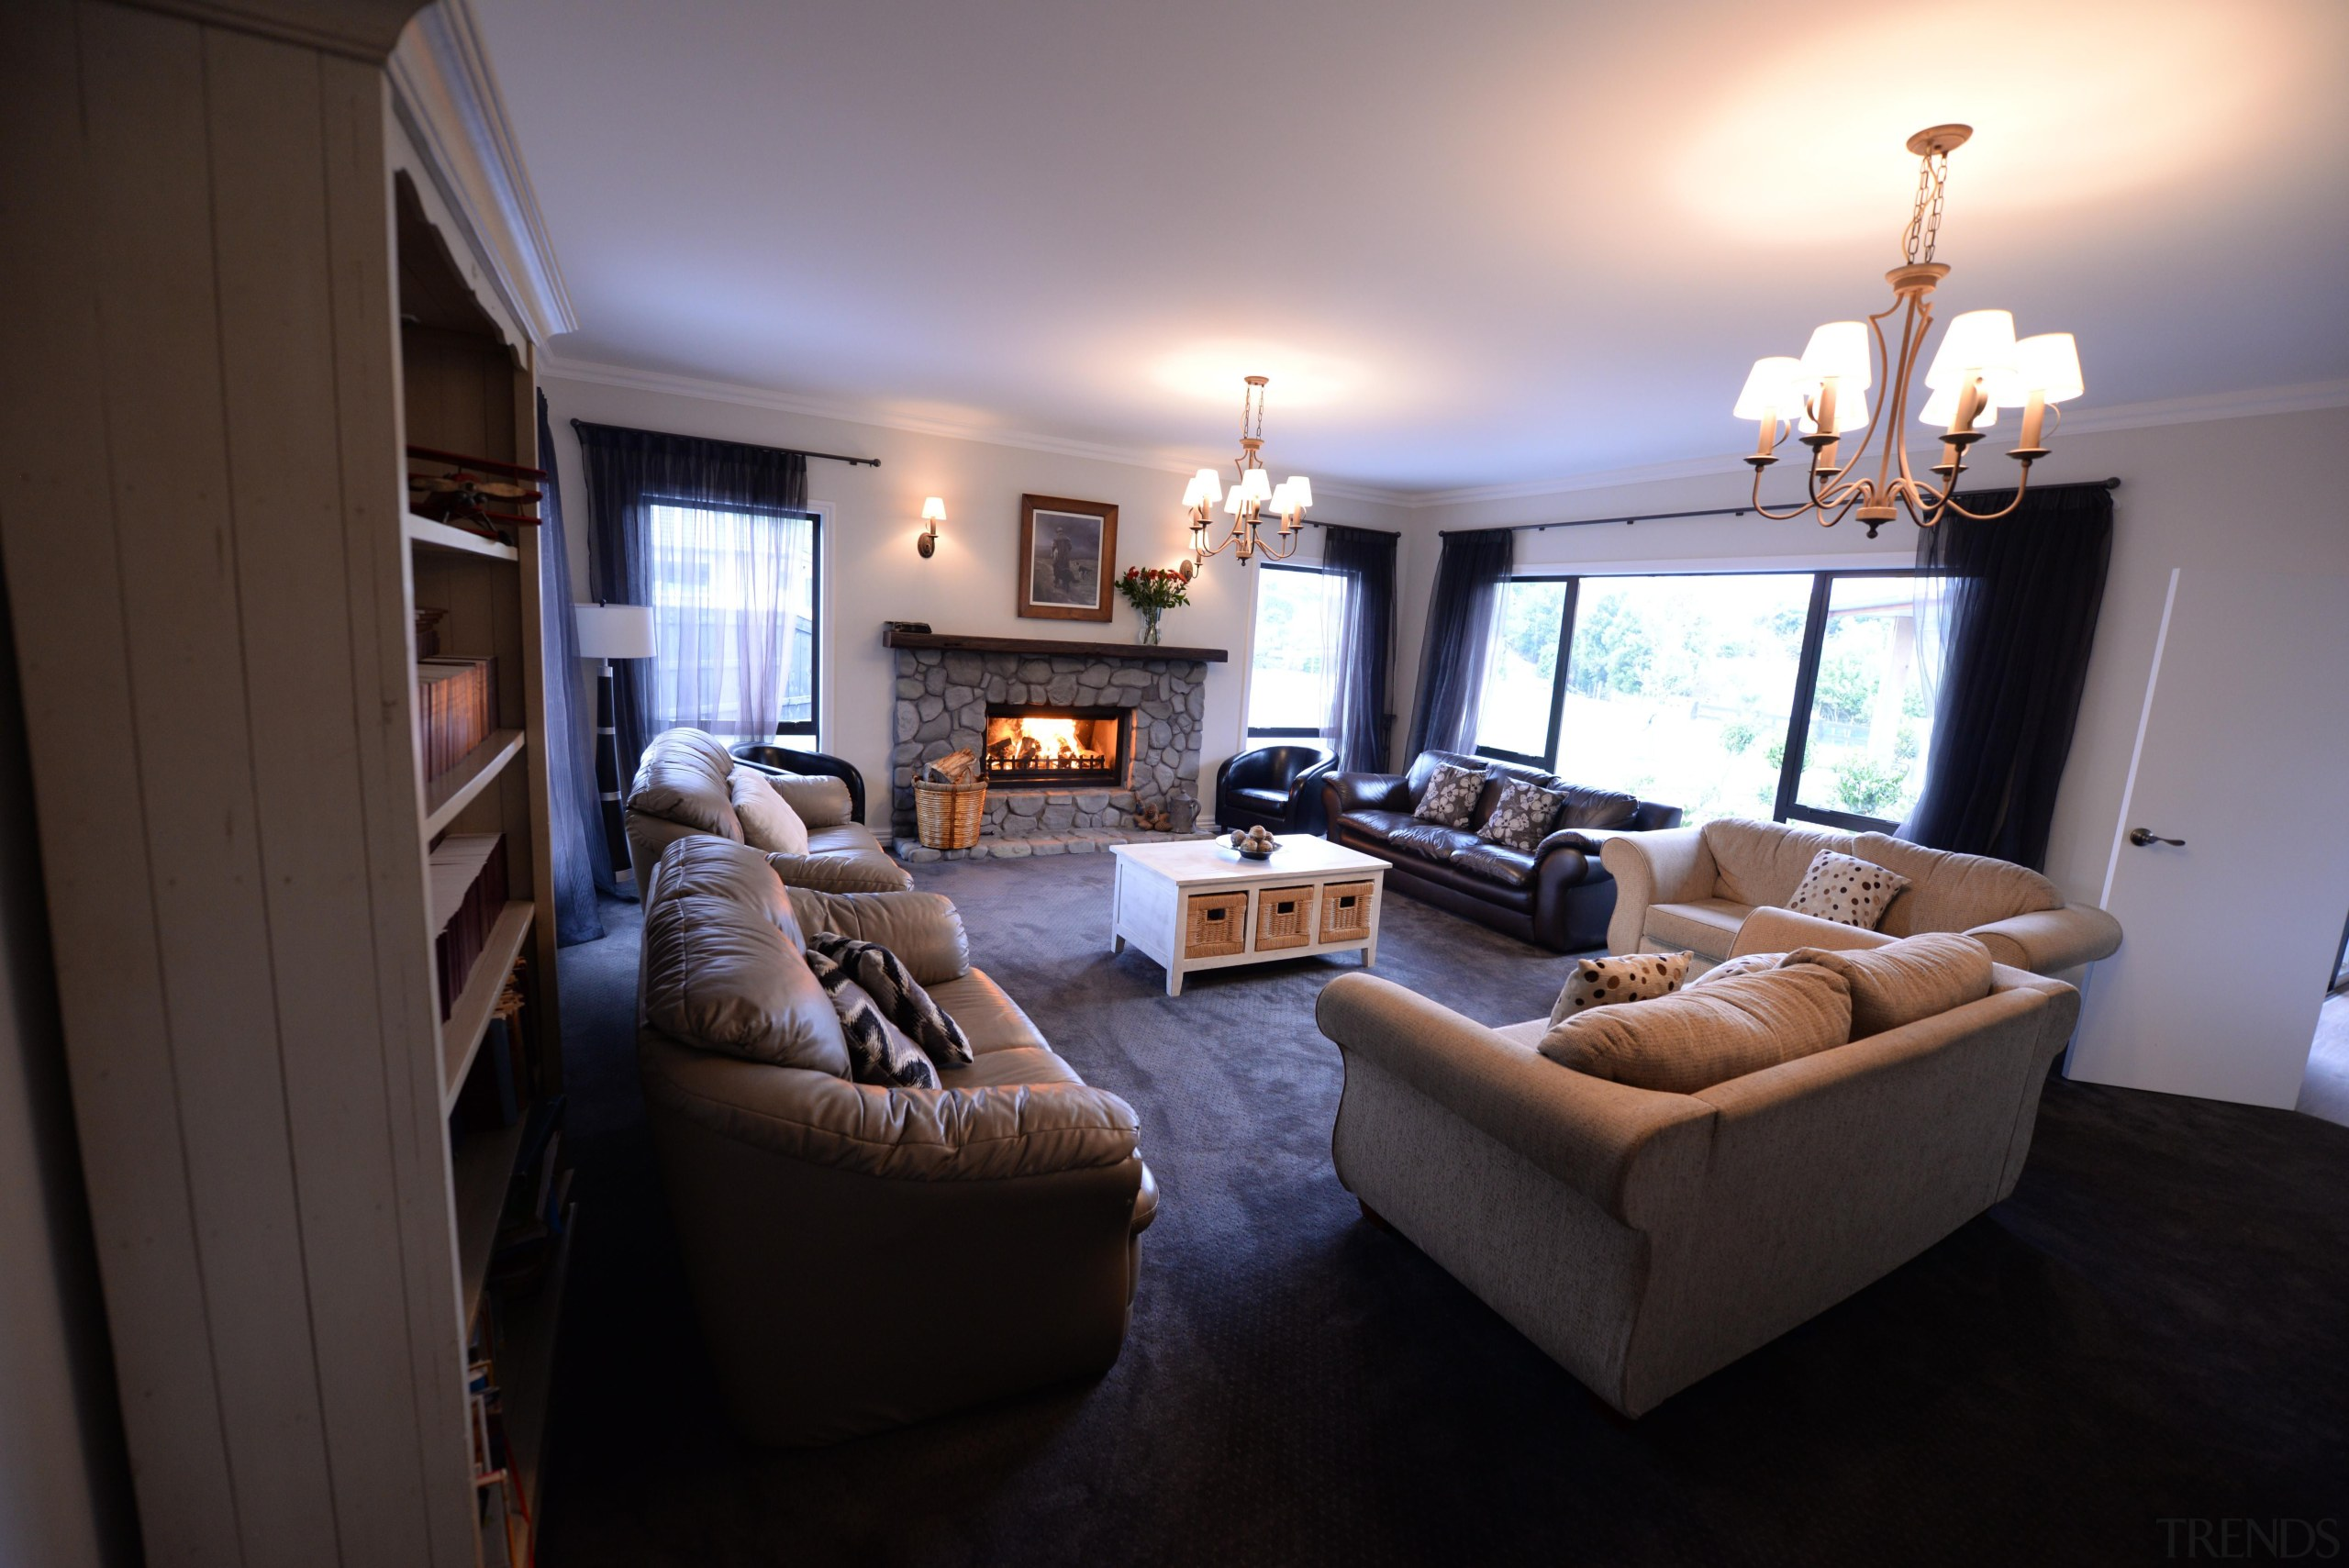 Since the early 1980's, we have successfully been home, house, interior design, living room, property, real estate, room, black